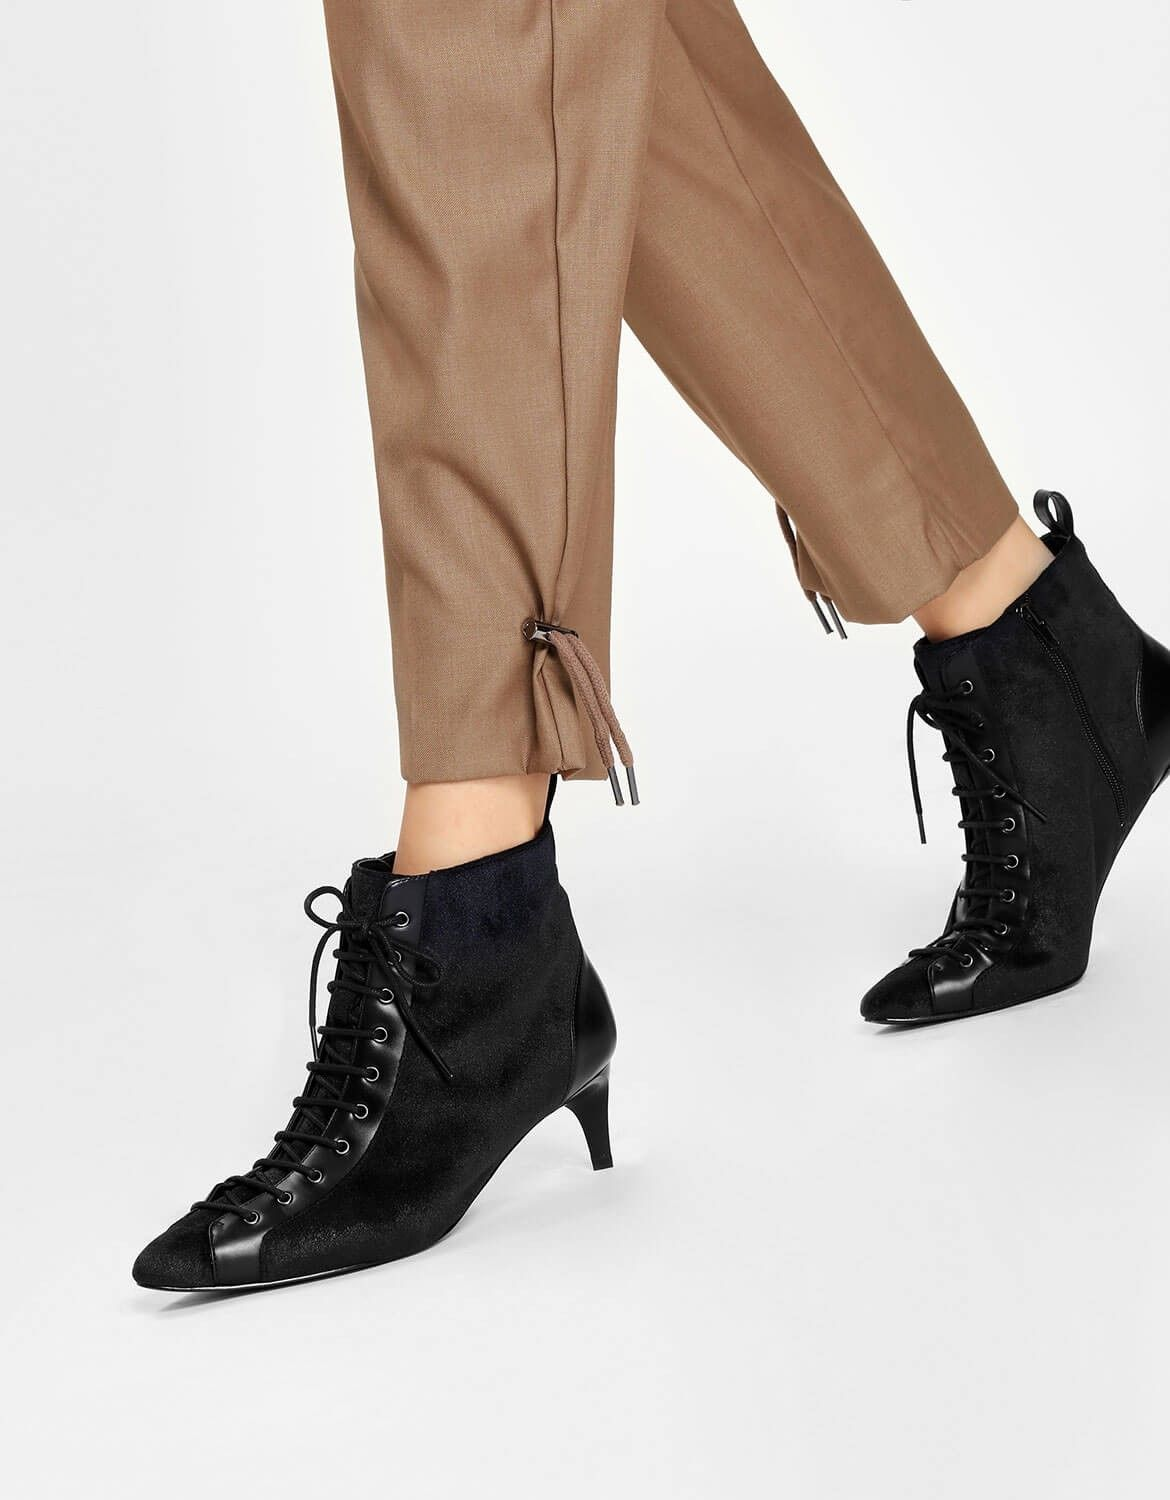 Black Kitten Heel Lace Up Boots Charles Keith Boots Heels Black Boots